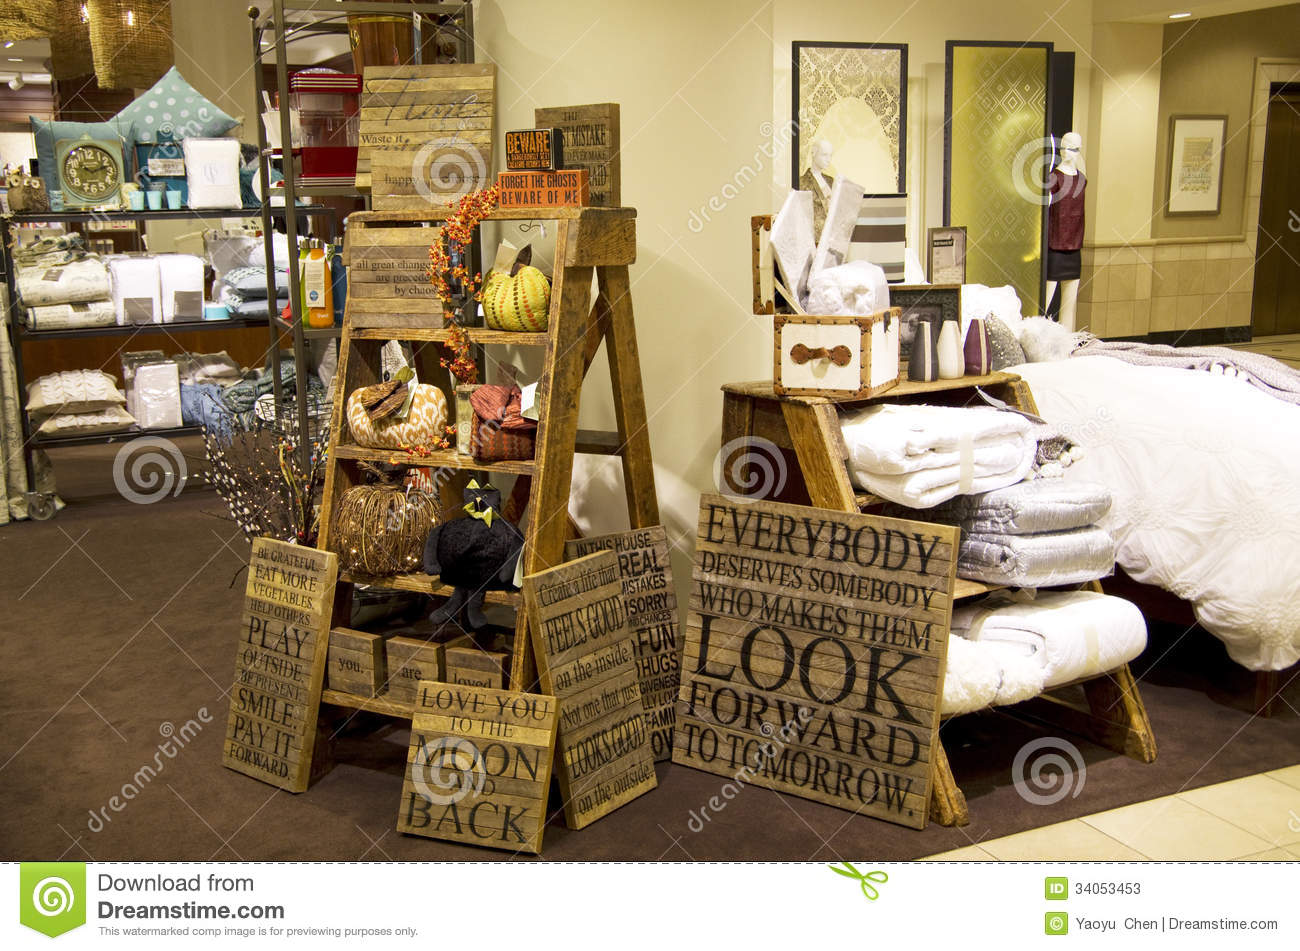 Furniture home decor department store Stock Photos. Home Furniture Department Store Stock Photos   Image  34155093